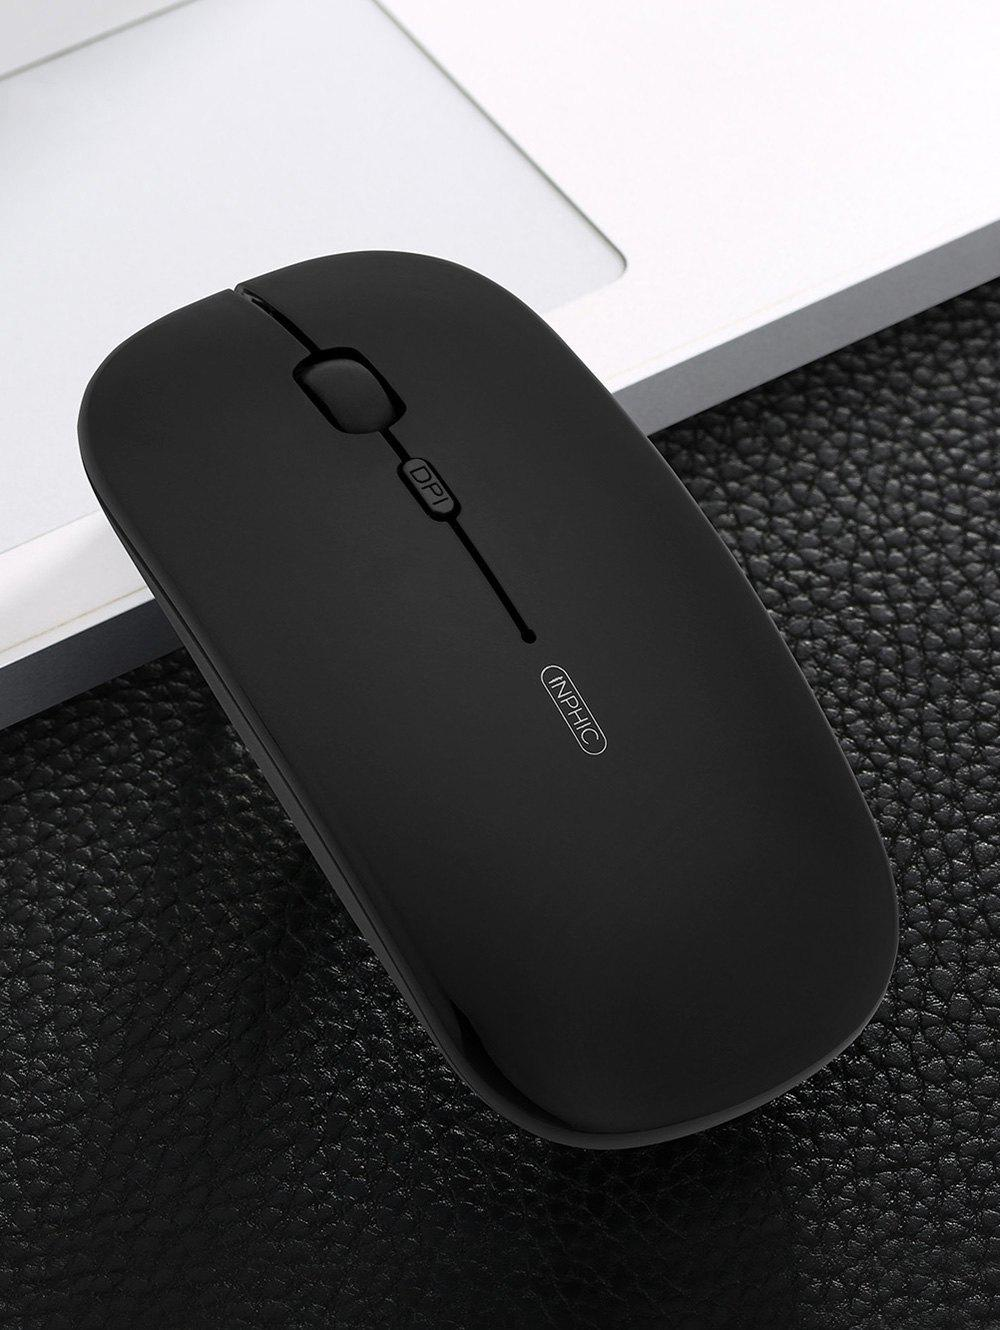 Inphic Ultra-thin Portable Mobile Wireless Mouse Mice For Computer - BLACK